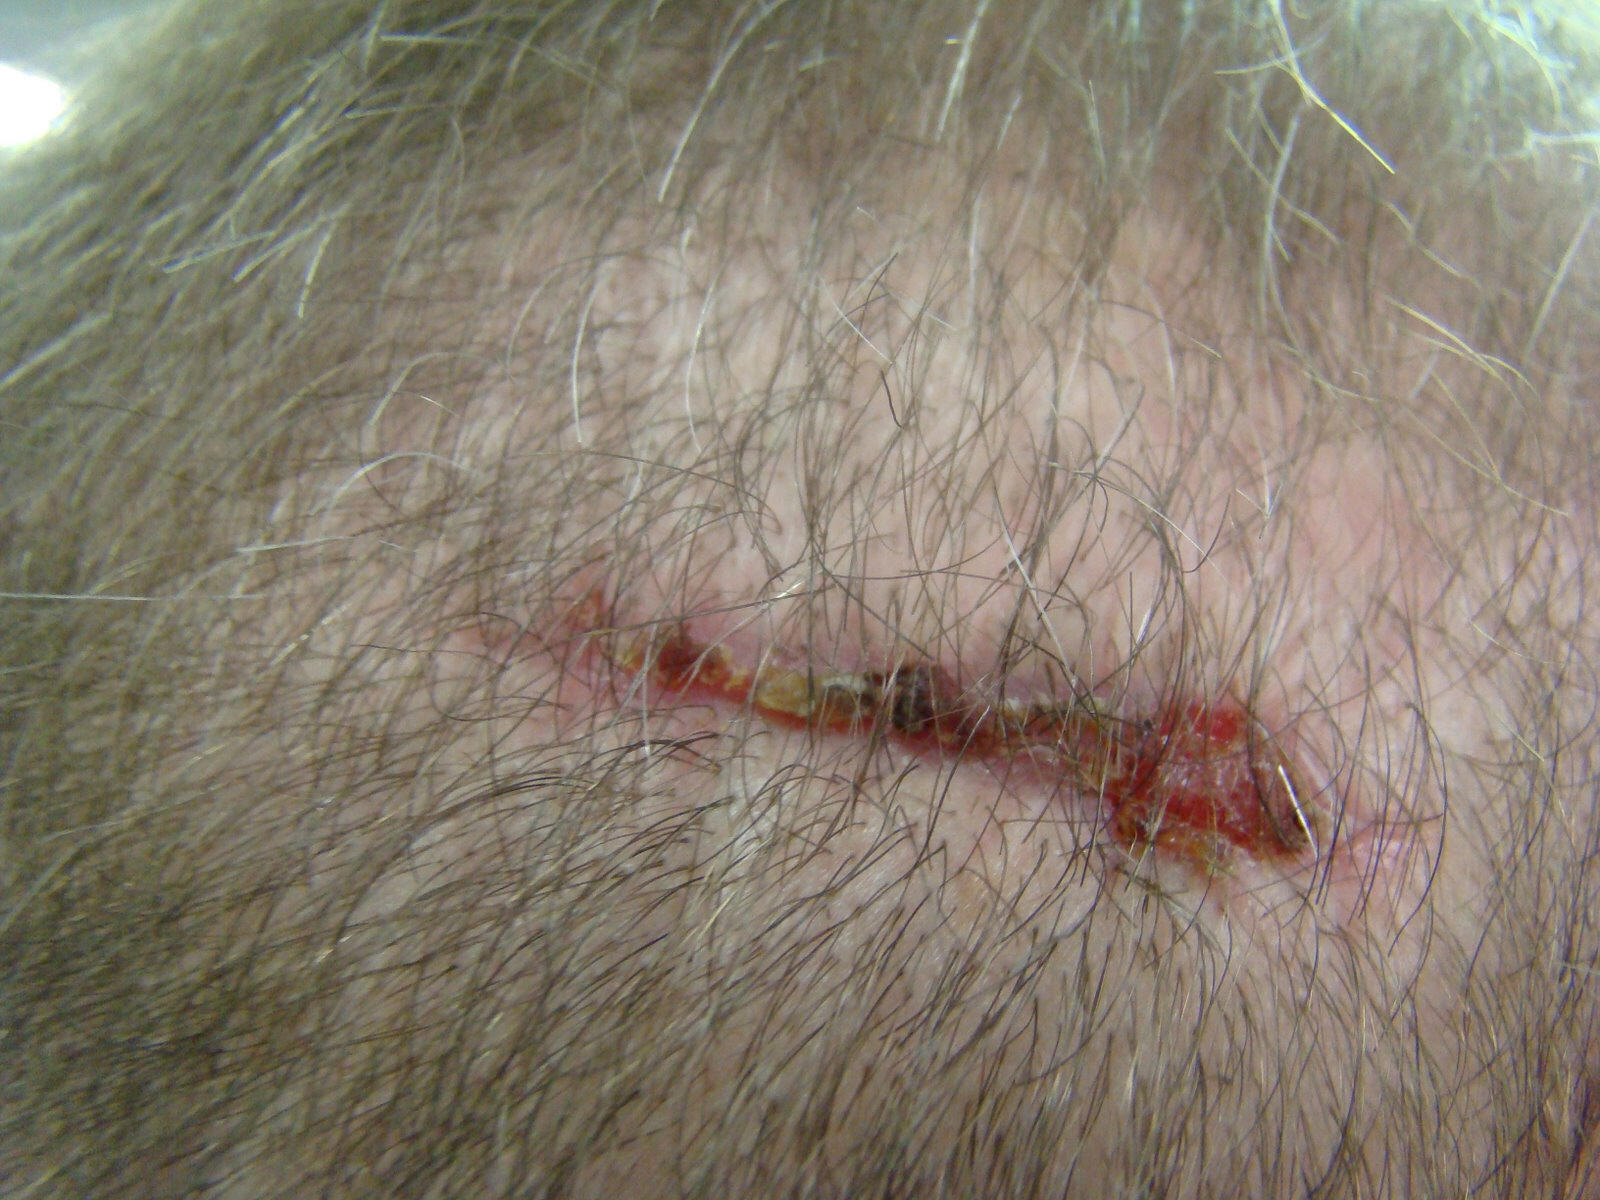 Acell hair transplant scar trial repair photo